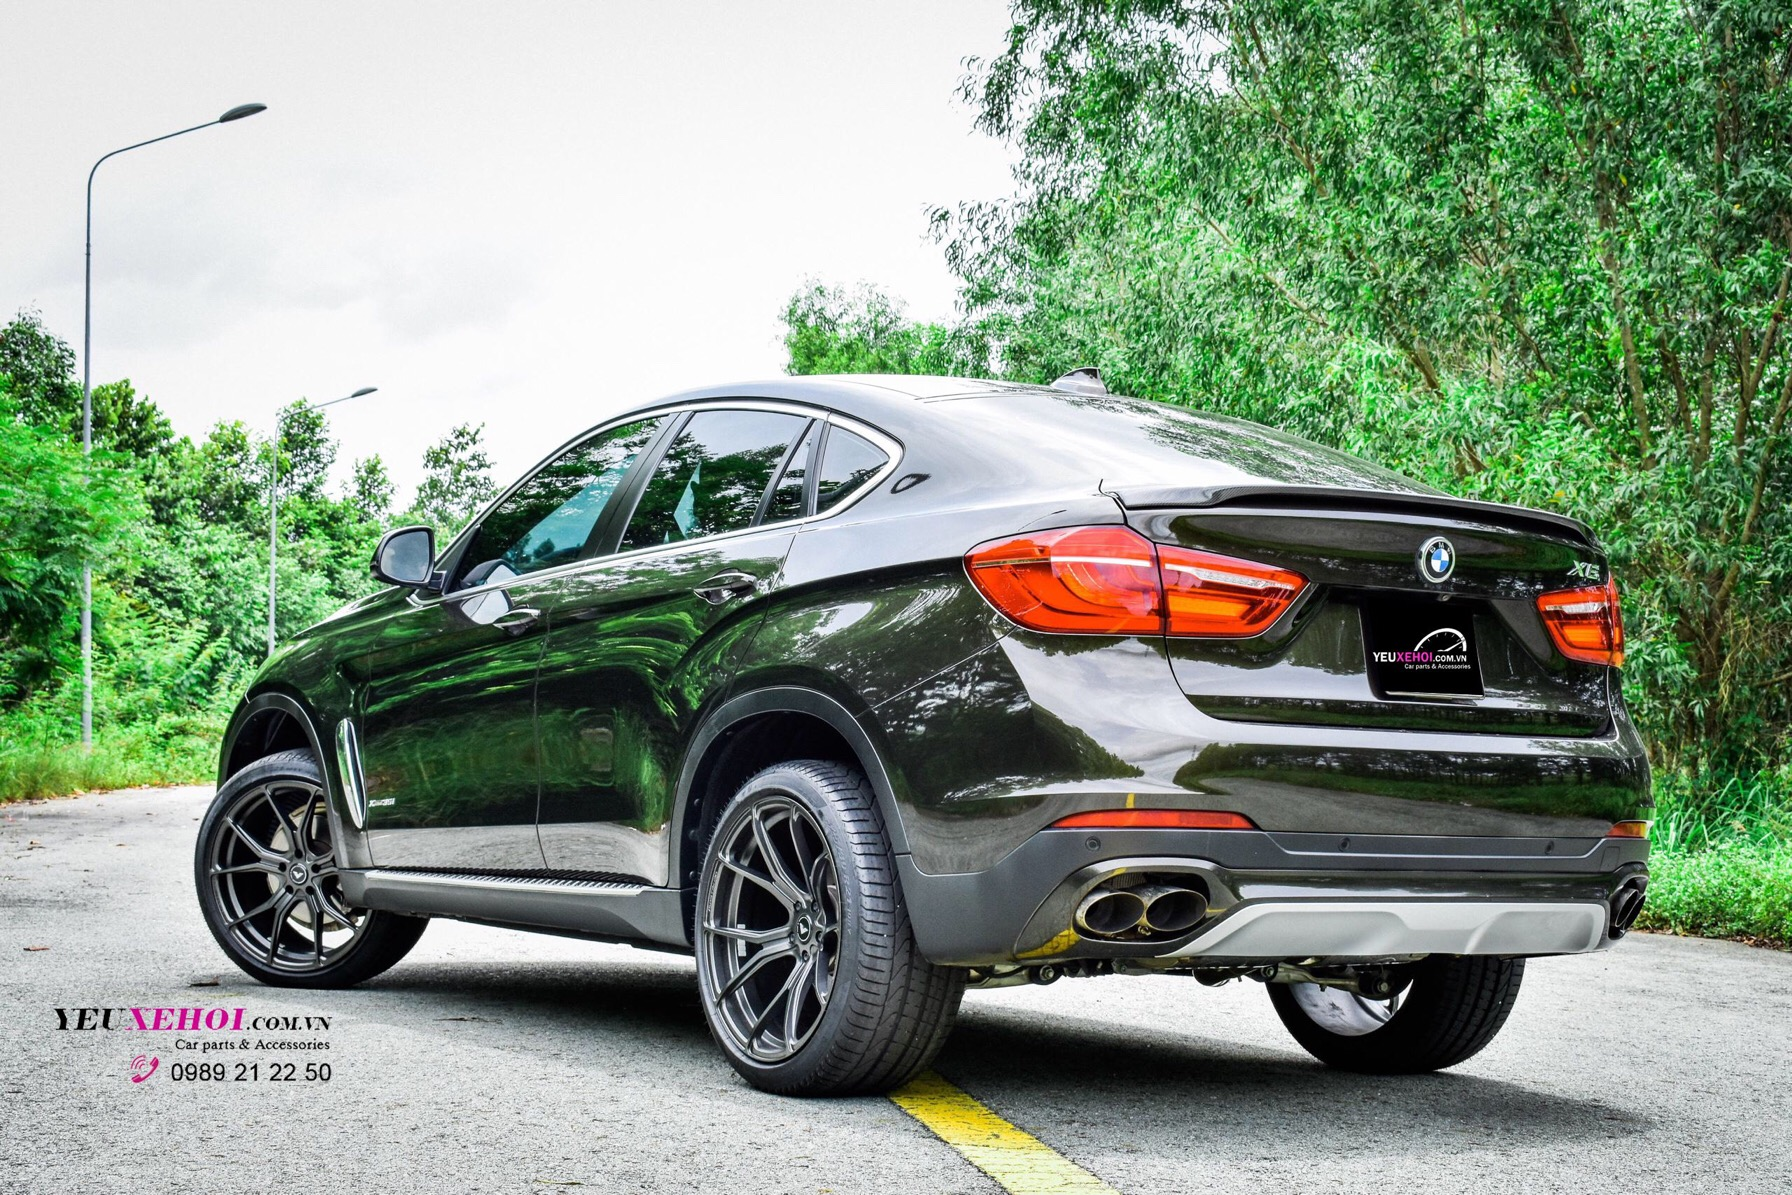 BMW X6 F16 / RES EXHAUST / VORSTEINER 21INCHES 0989 21 22 50